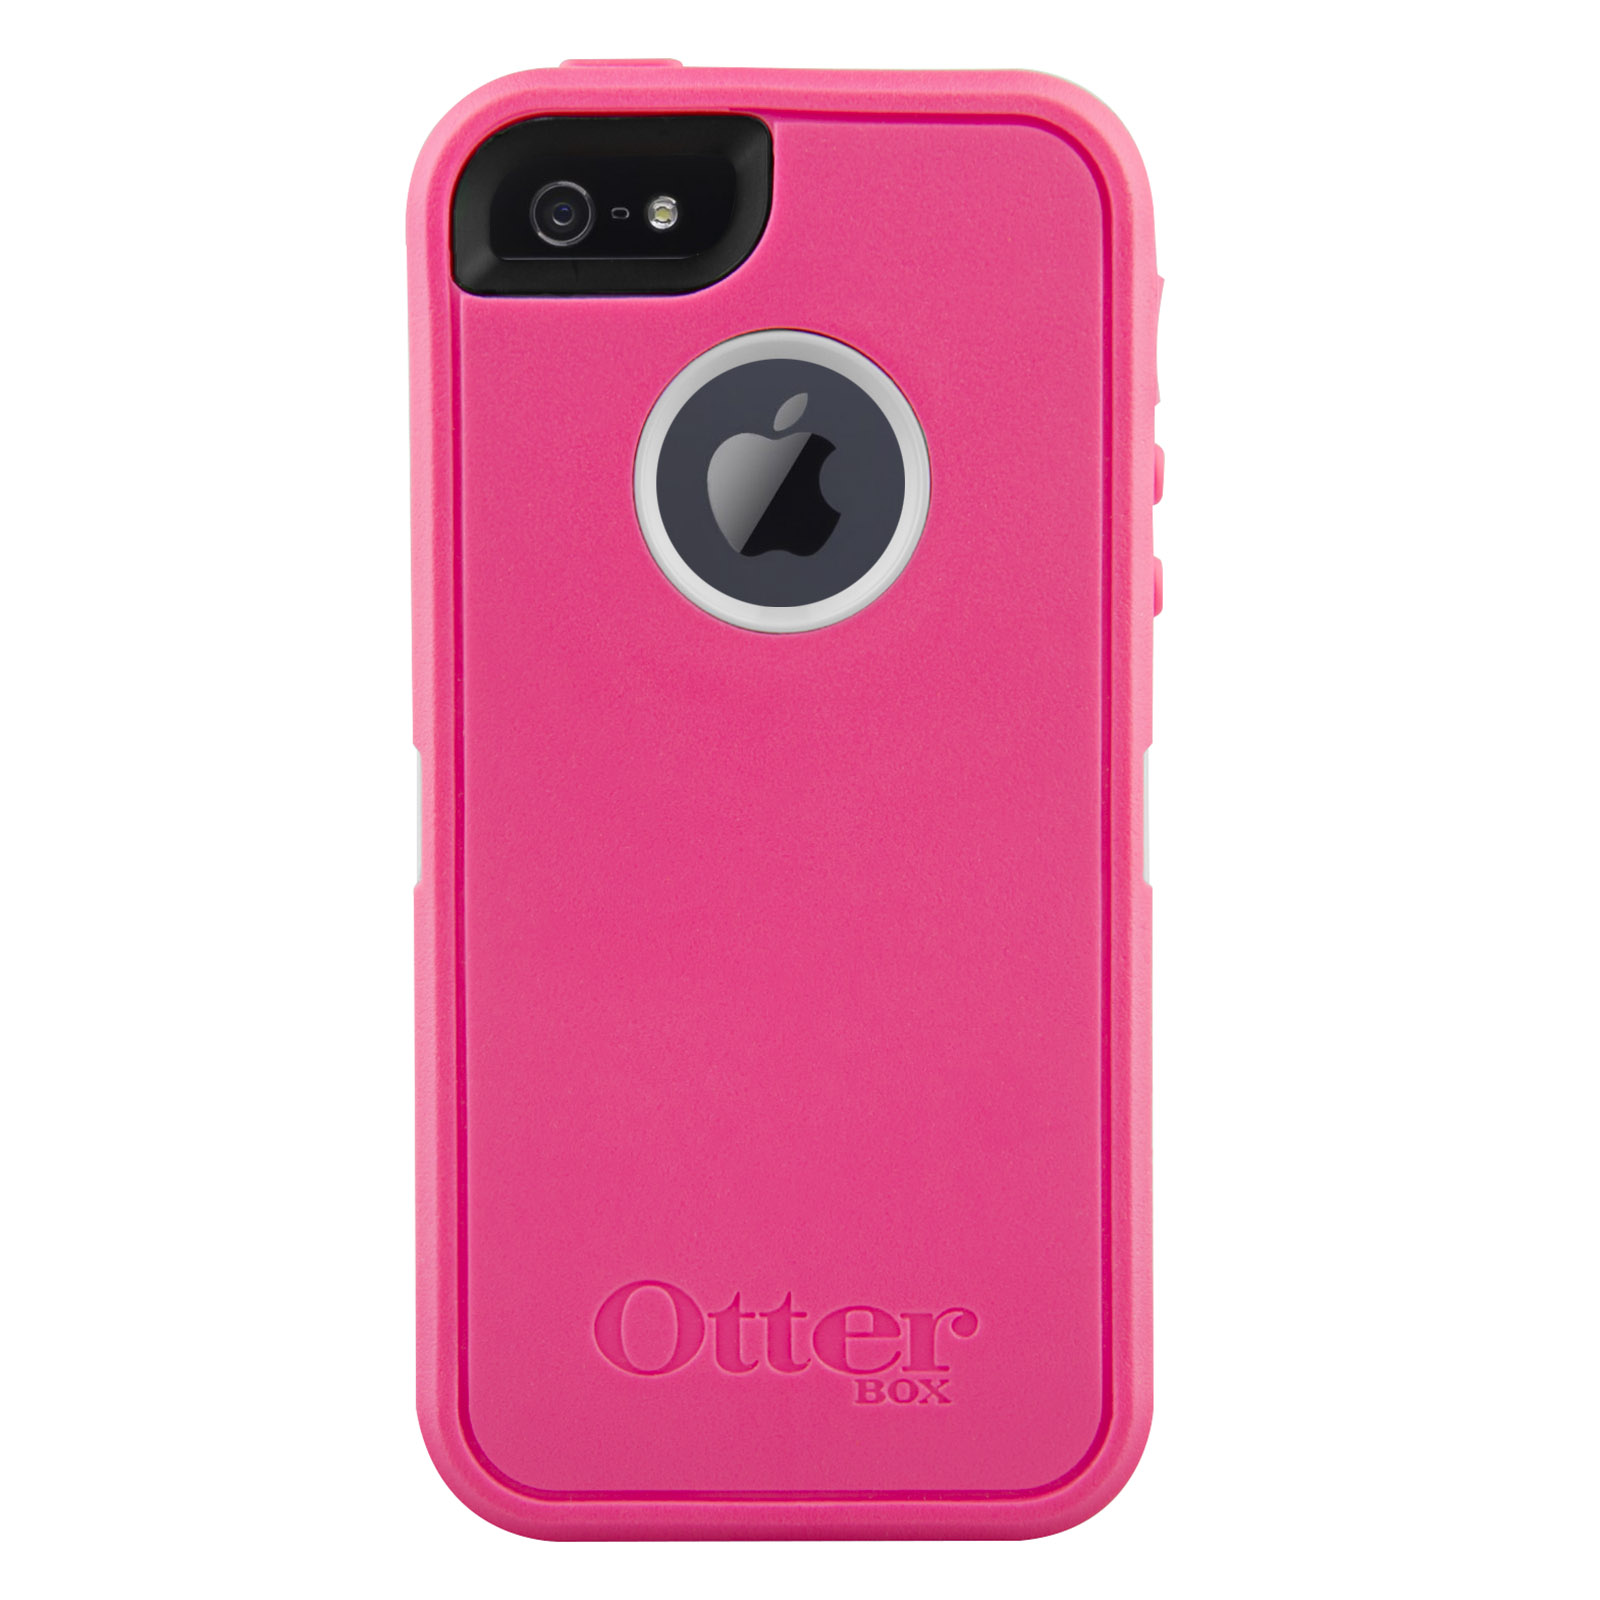 online store 87f5c d4d17 Otterbox cover for iphone 5 / Taylor gourmet merrifield